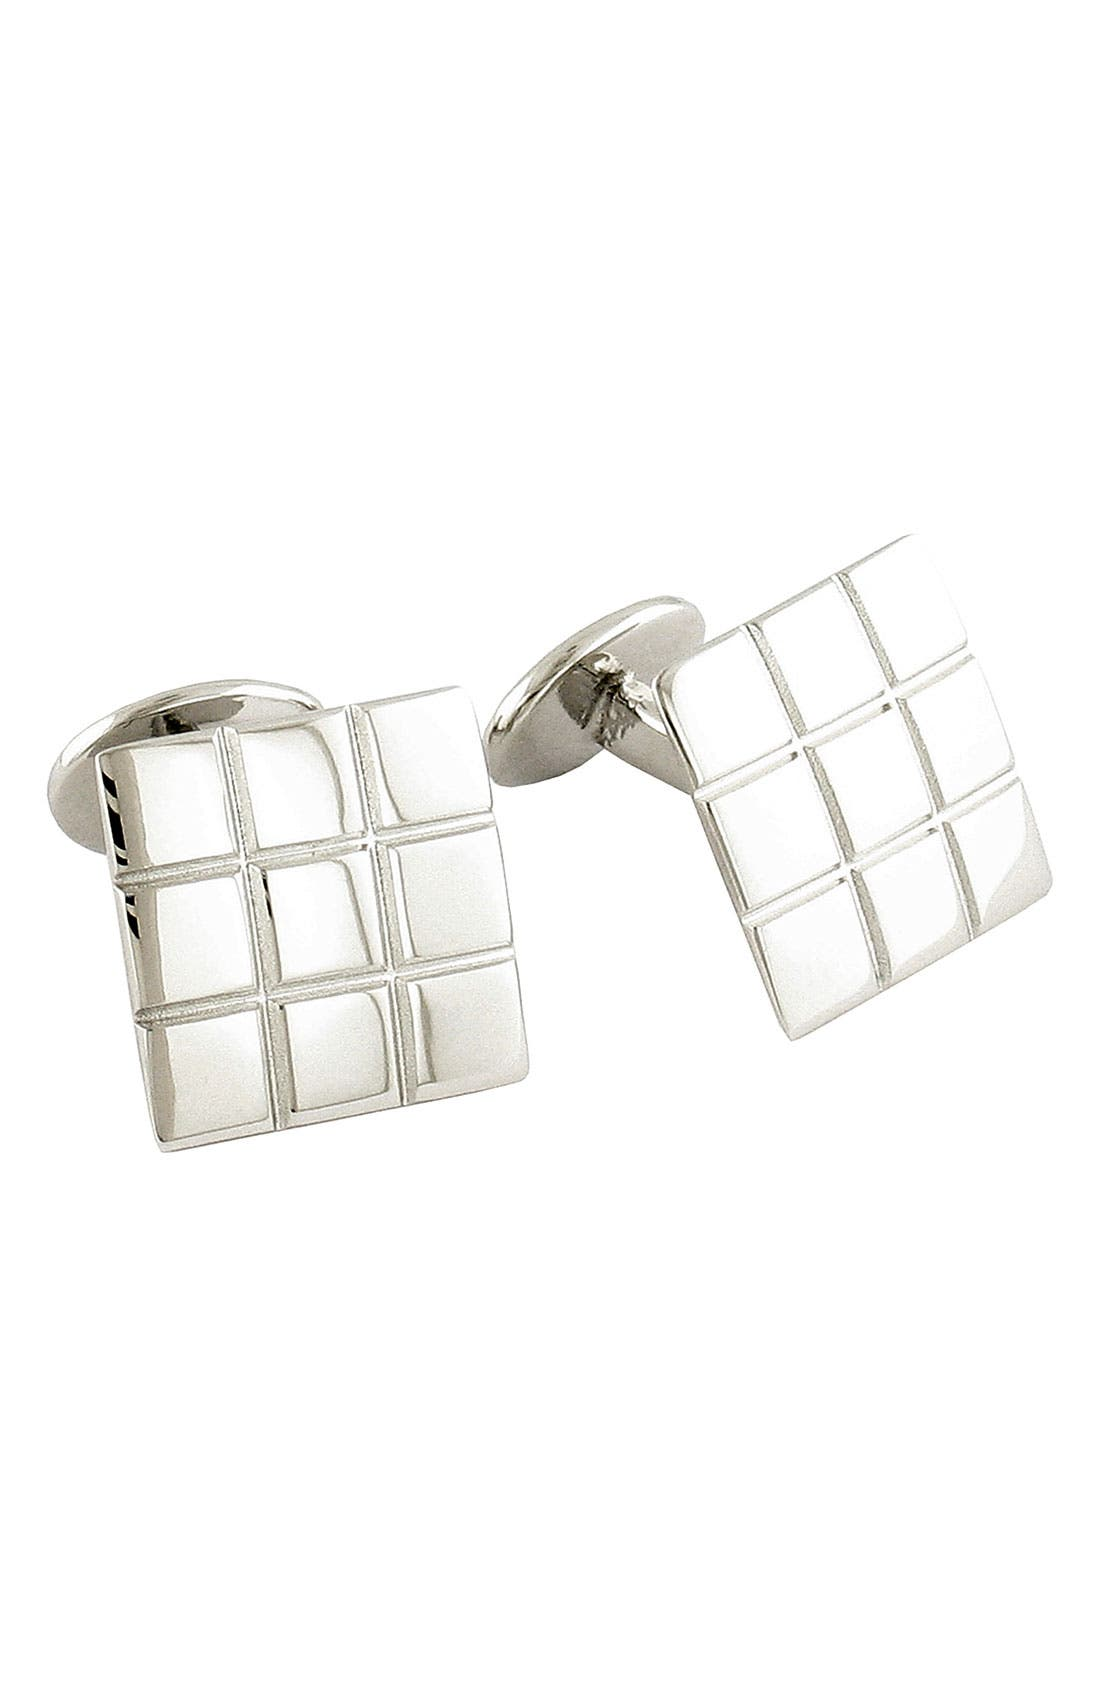 Alternate Image 1 Selected - David Donahue '9 Squared' Sterling Silver Cuff Links